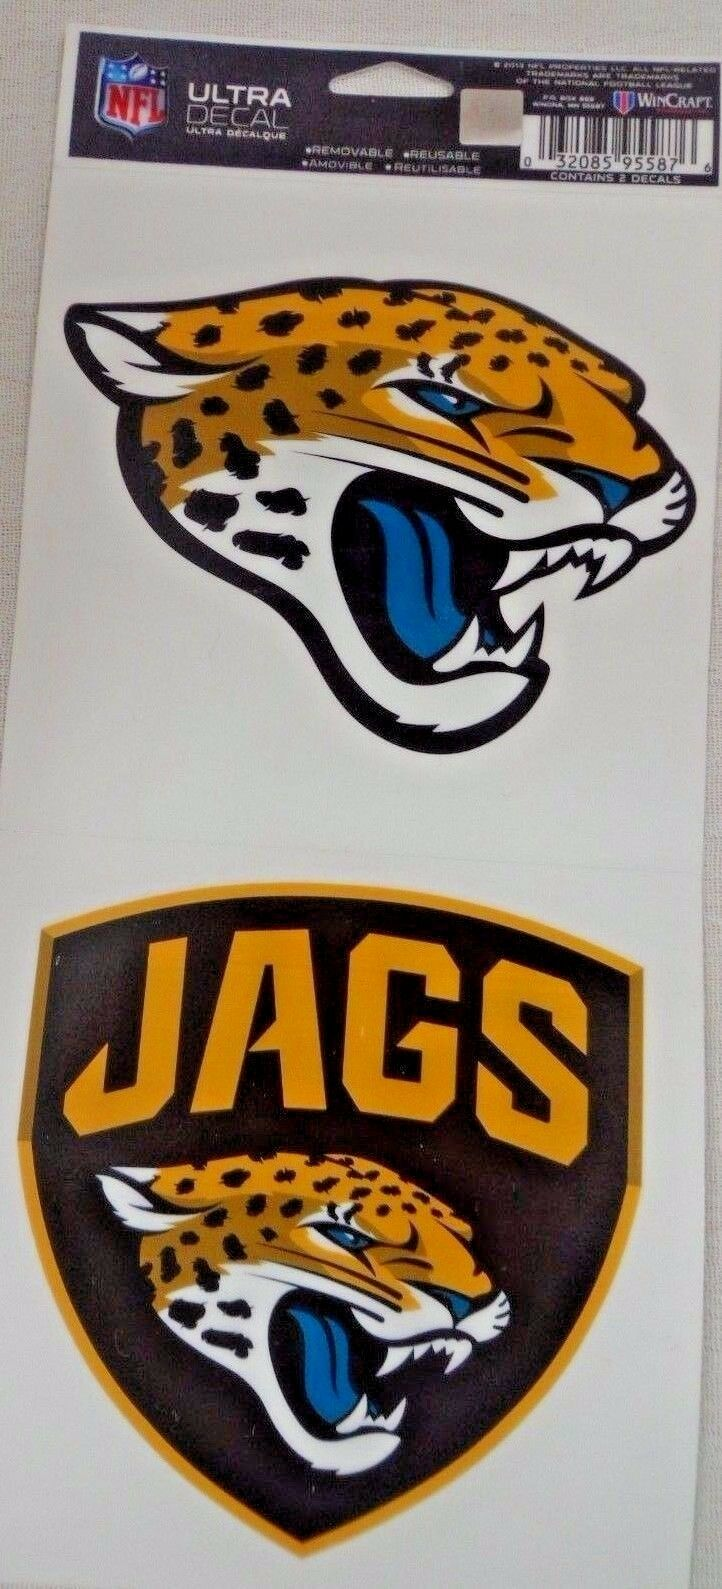 NFL Ultra Decals 2 Pack Set Removable Reusable Sticker Wincraft Jacksonville Jaguars